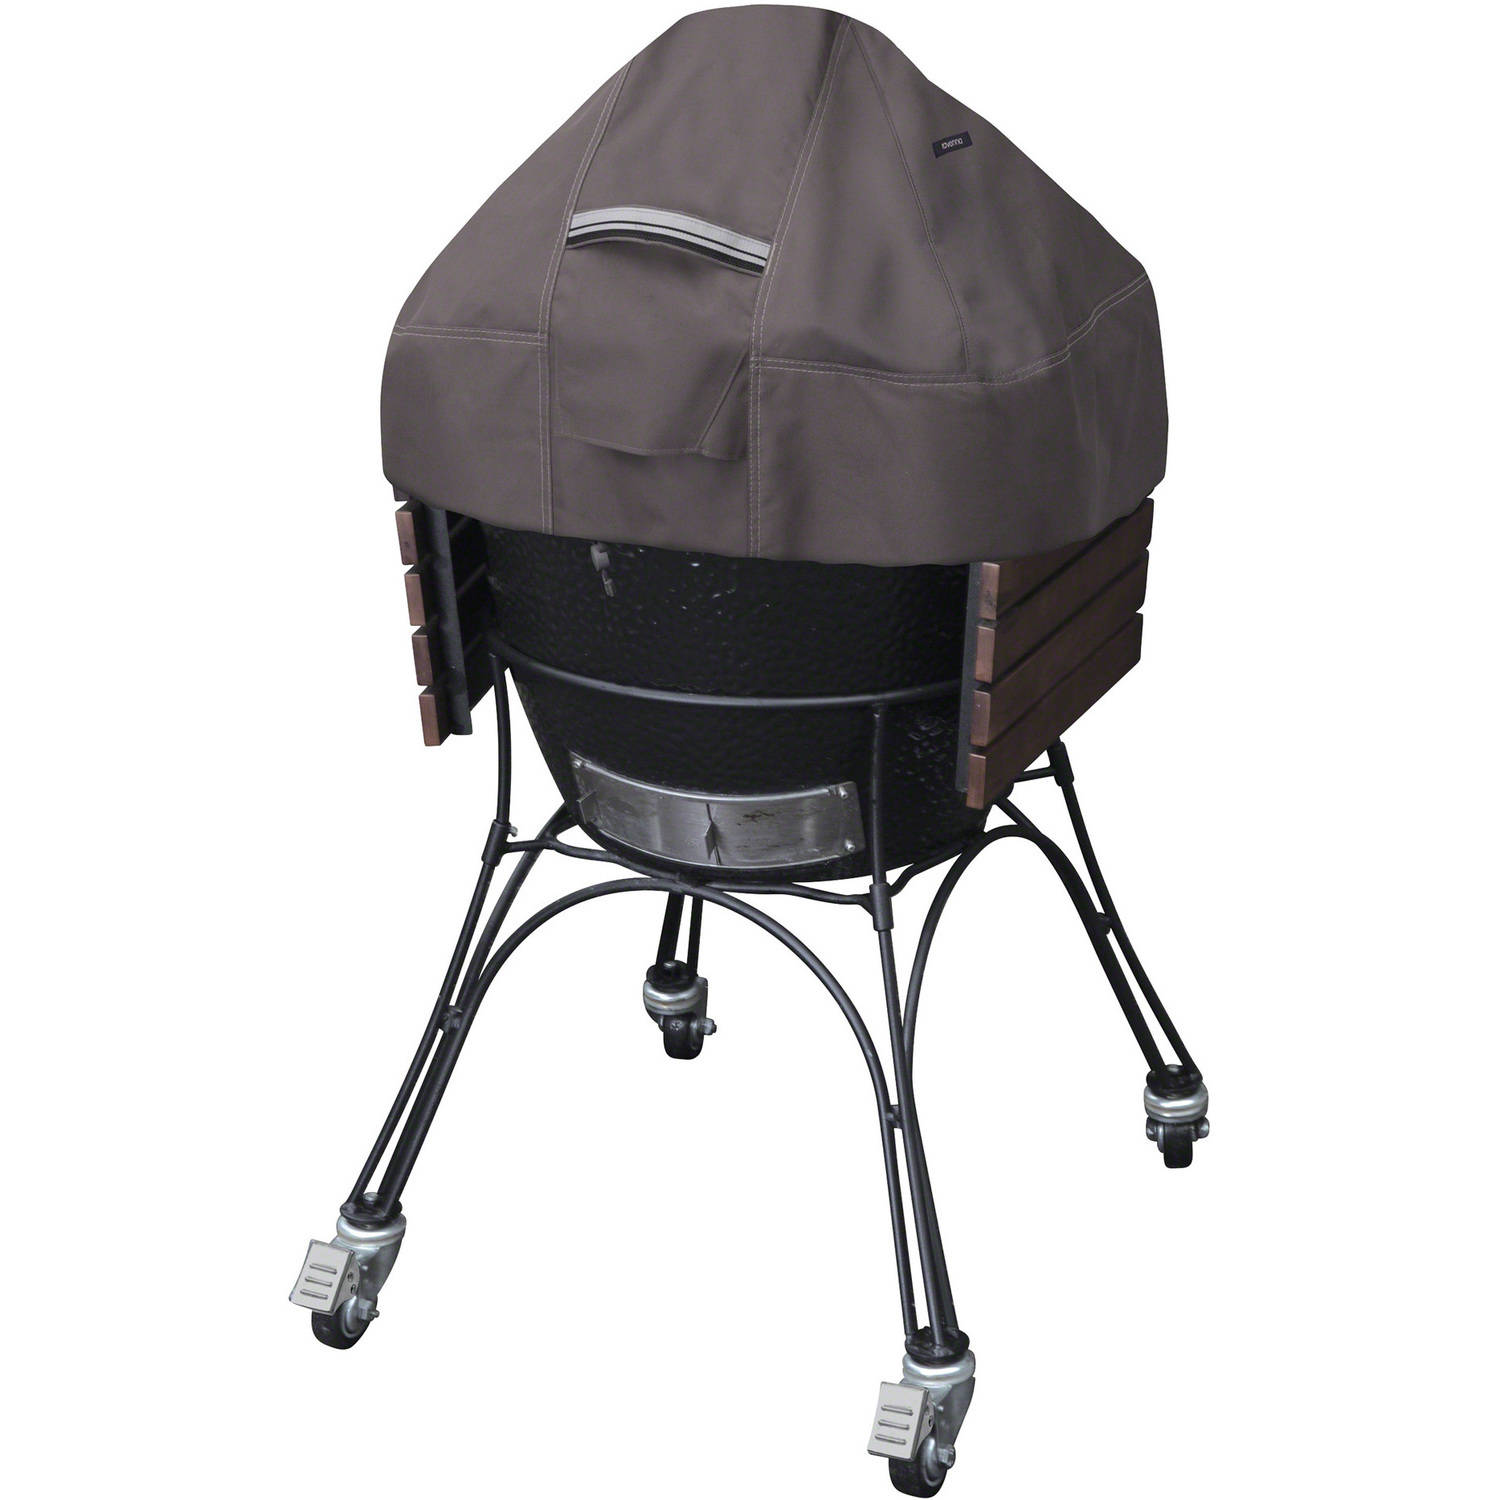 Classic Accessories Ravenna Ceramic Barbecue BBQ Grill Dome Patio Storage  Cover